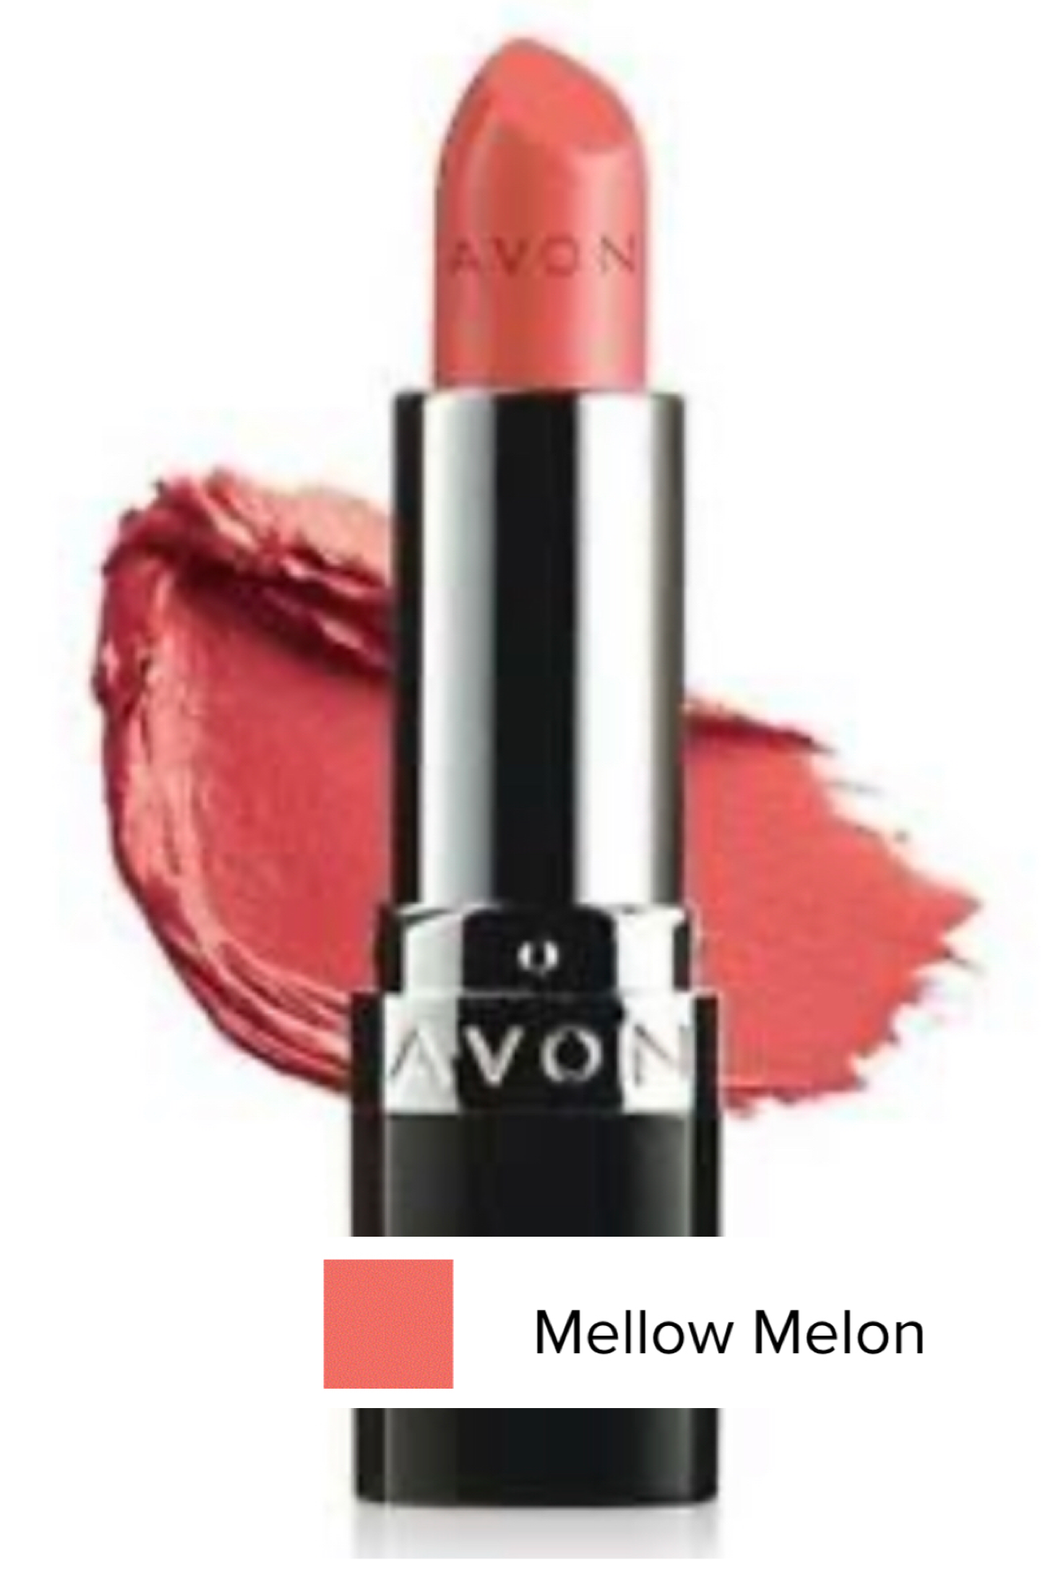 Mellow Melon Nourishing Lipstick